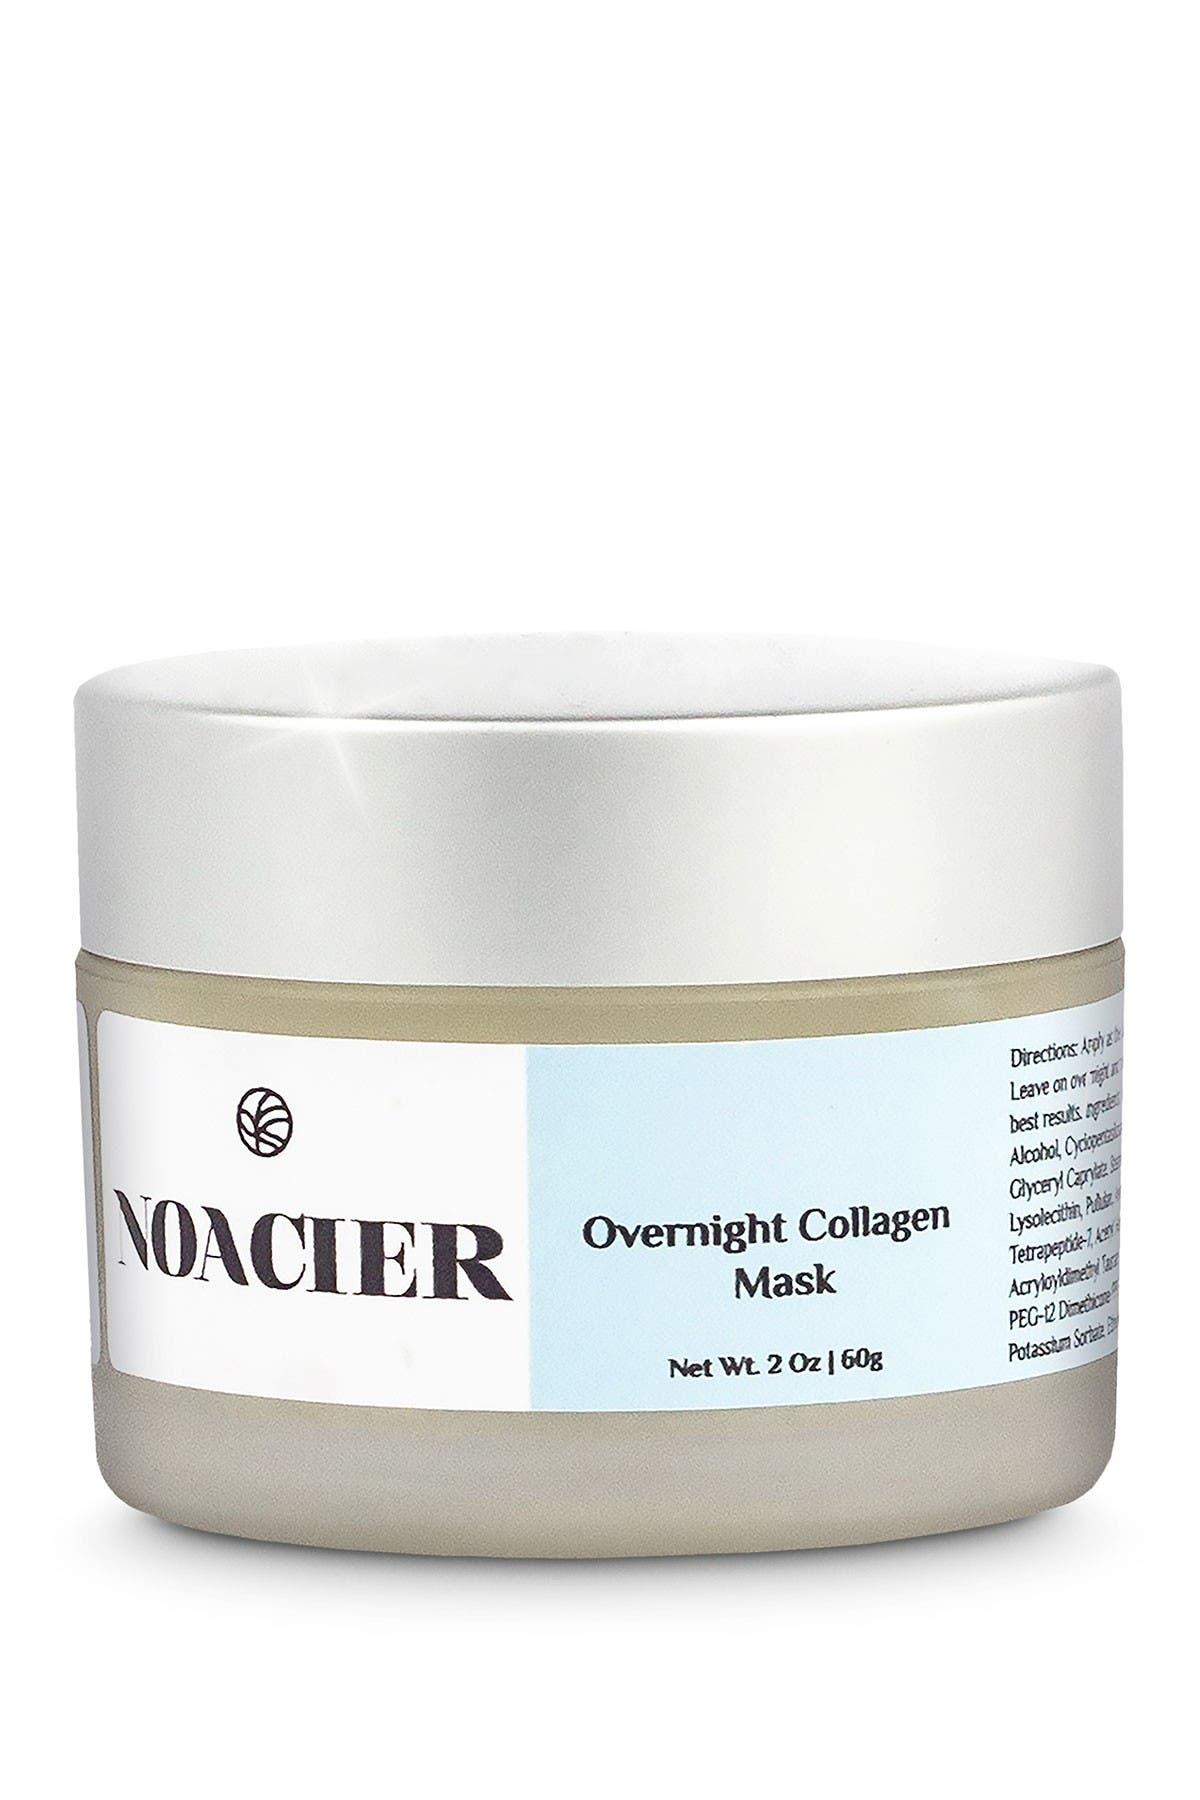 Image of Noacier Overnight Collagen Face Mask, Anti Aging, Wrinkle Free Moisturizer for Tightening and Firming Skin